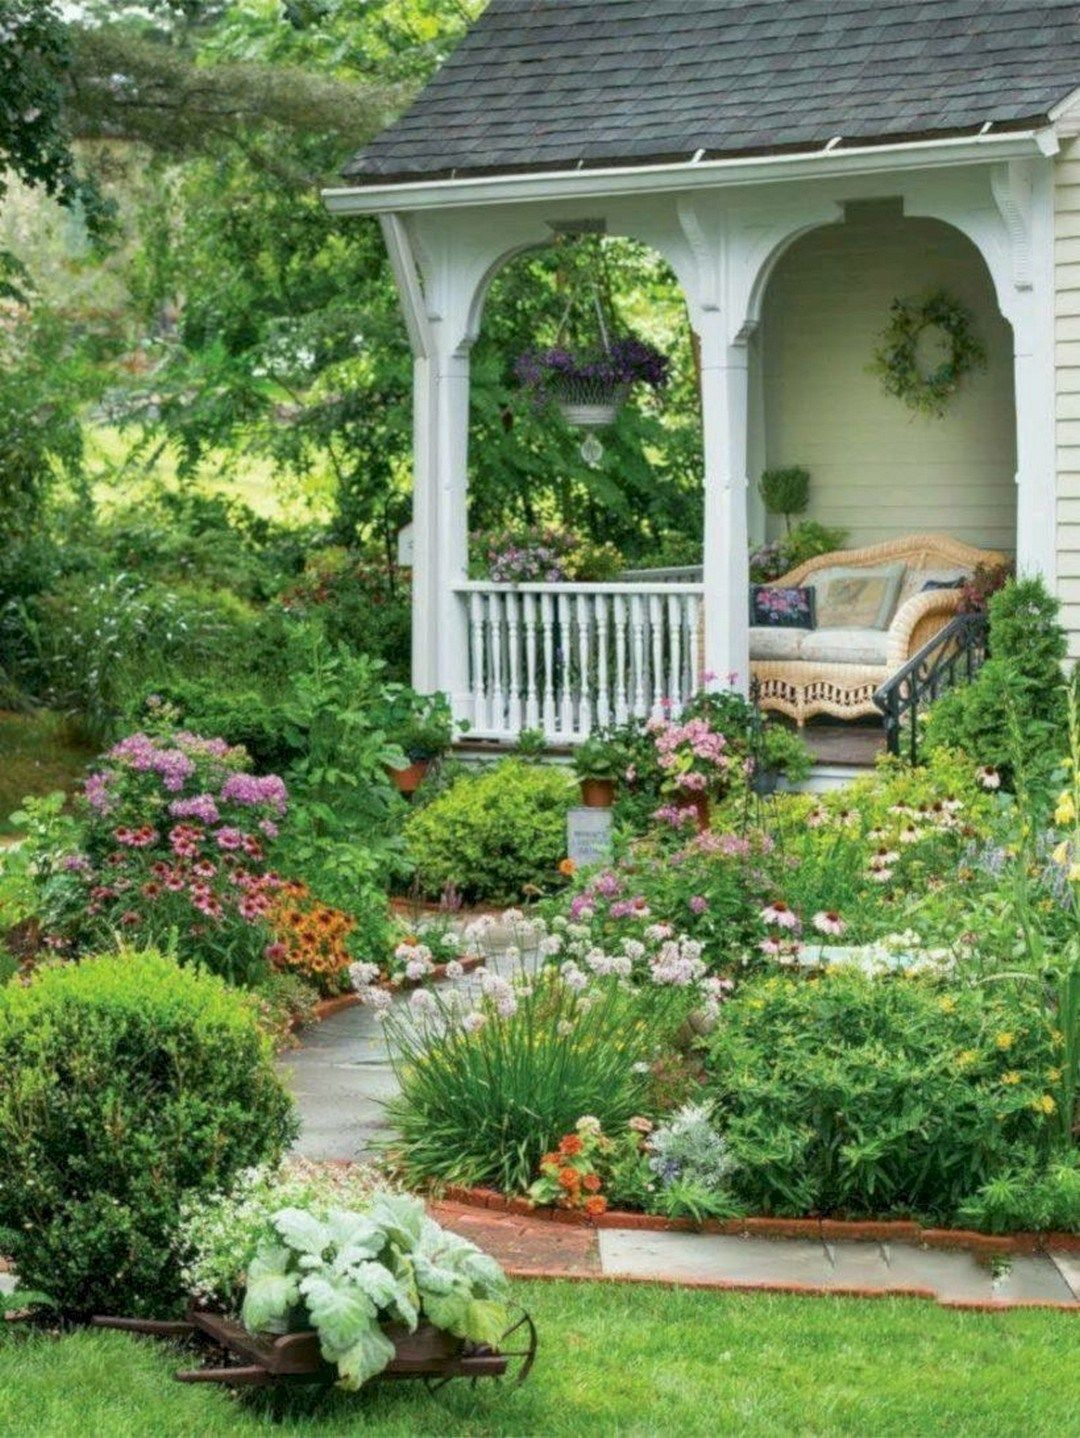 33 Stunning Cottage Style Garden Ideas To Create The Perfect Spot 25 Front Yard Landscaping Design Farmhouse Landscaping Pathway Landscaping Farmhouse style backyard ideas